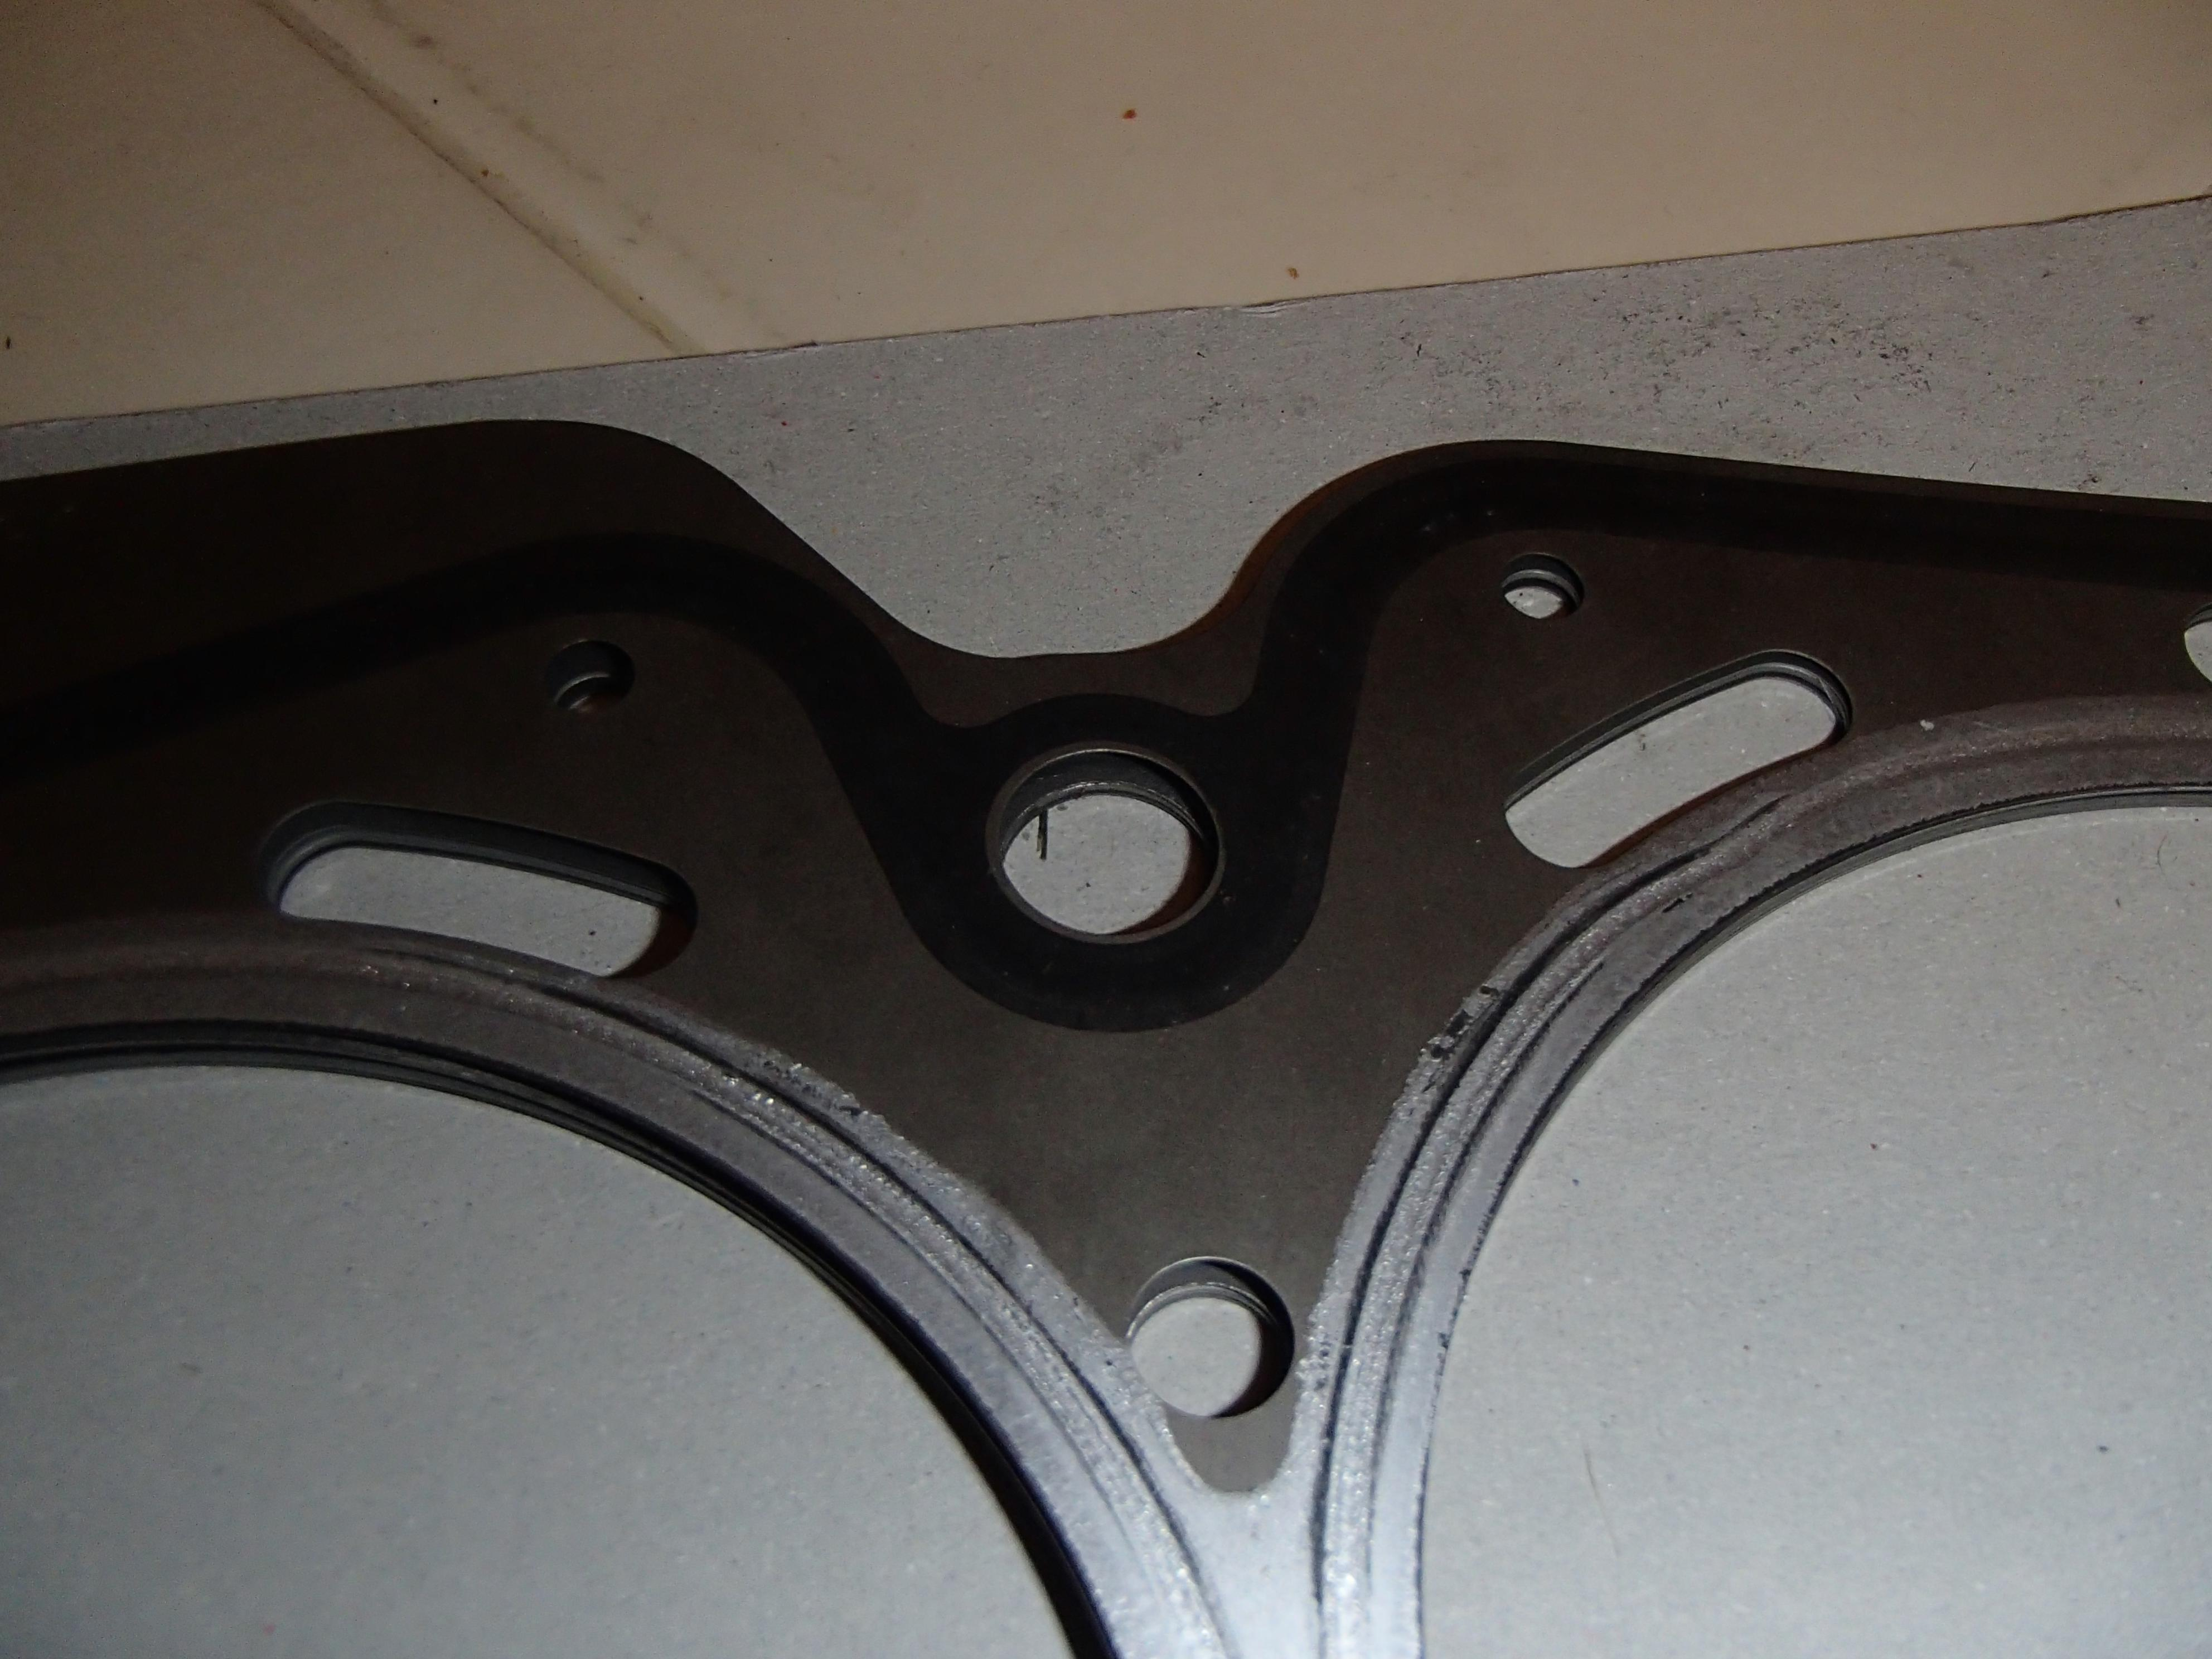 98 Subaru Ej25 Dohc Head Gasket Question Outback 1998 Click Image For Larger Version Name Pb031310 Views 181 Size 7501